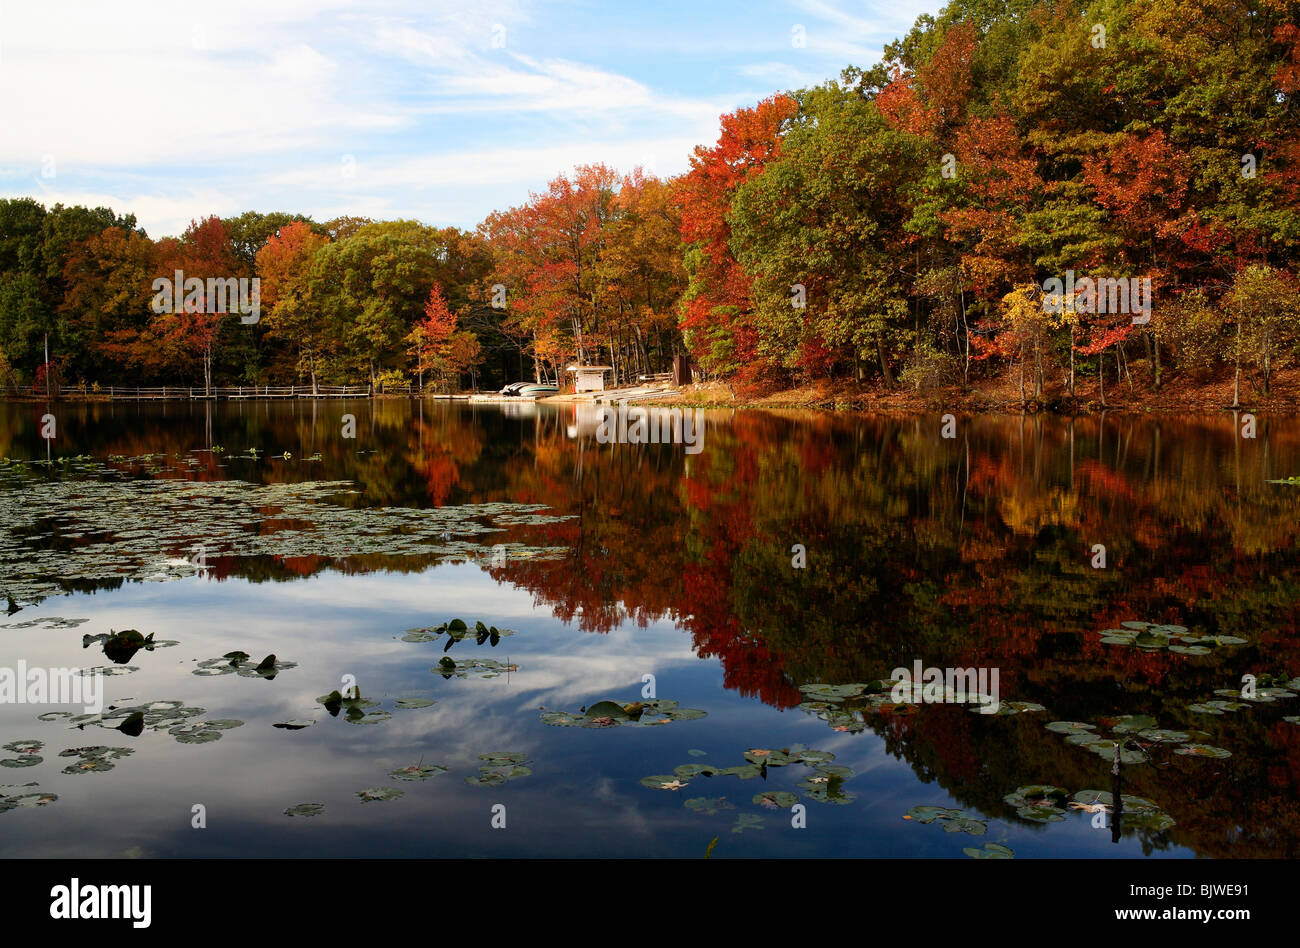 Autumn surrounds Lake Orbach in Staten Island's Greenbelt. - Stock Image